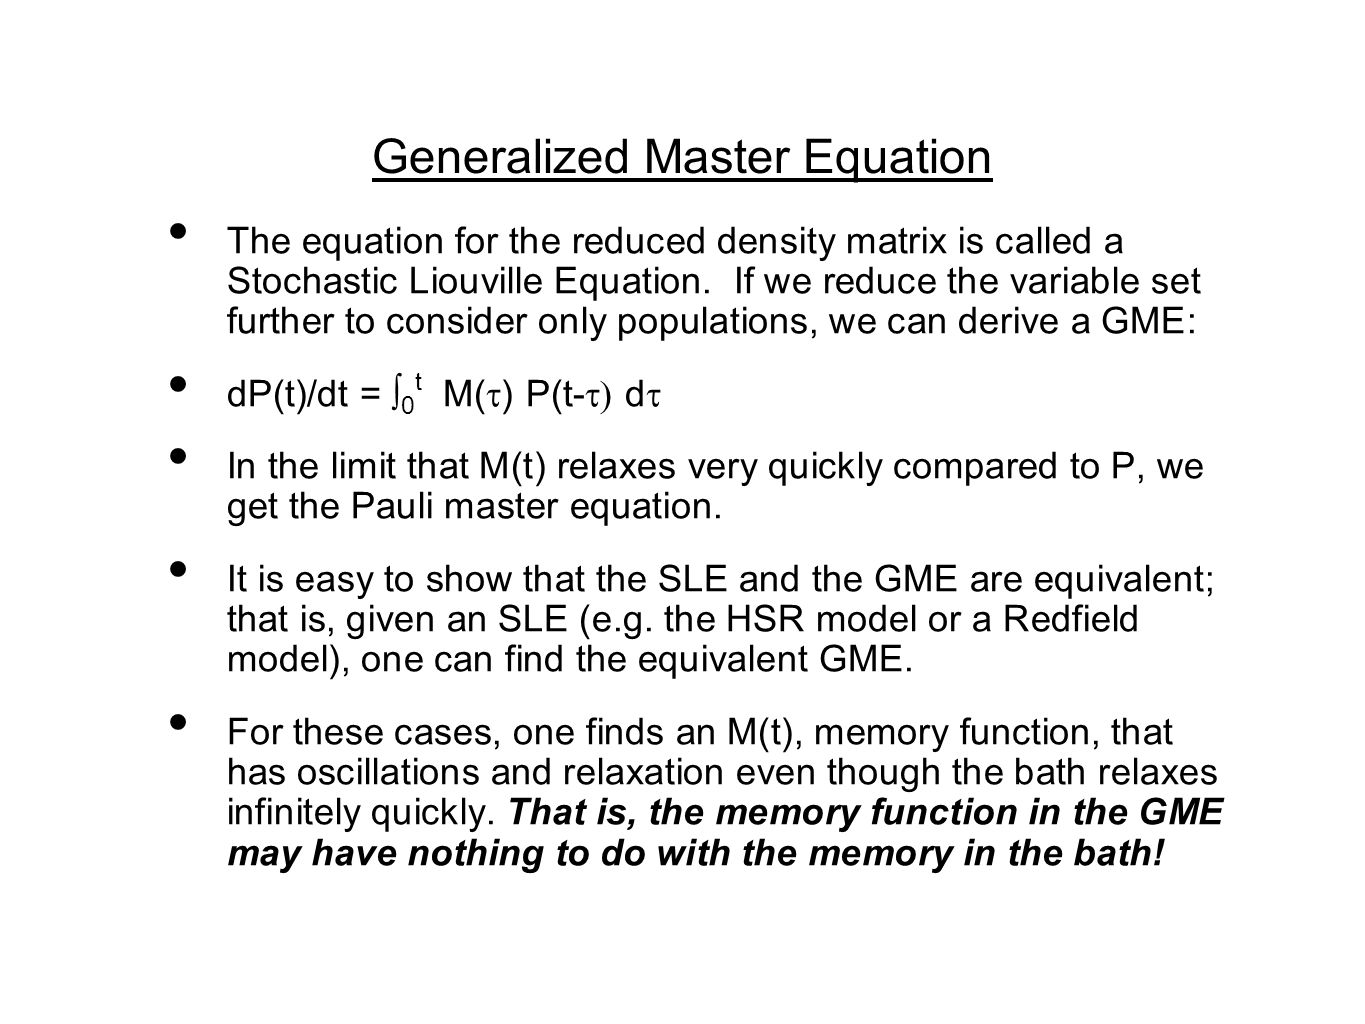 Generalized Master Equation The equation for the reduced density matrix is called a Stochastic Liouville Equation.